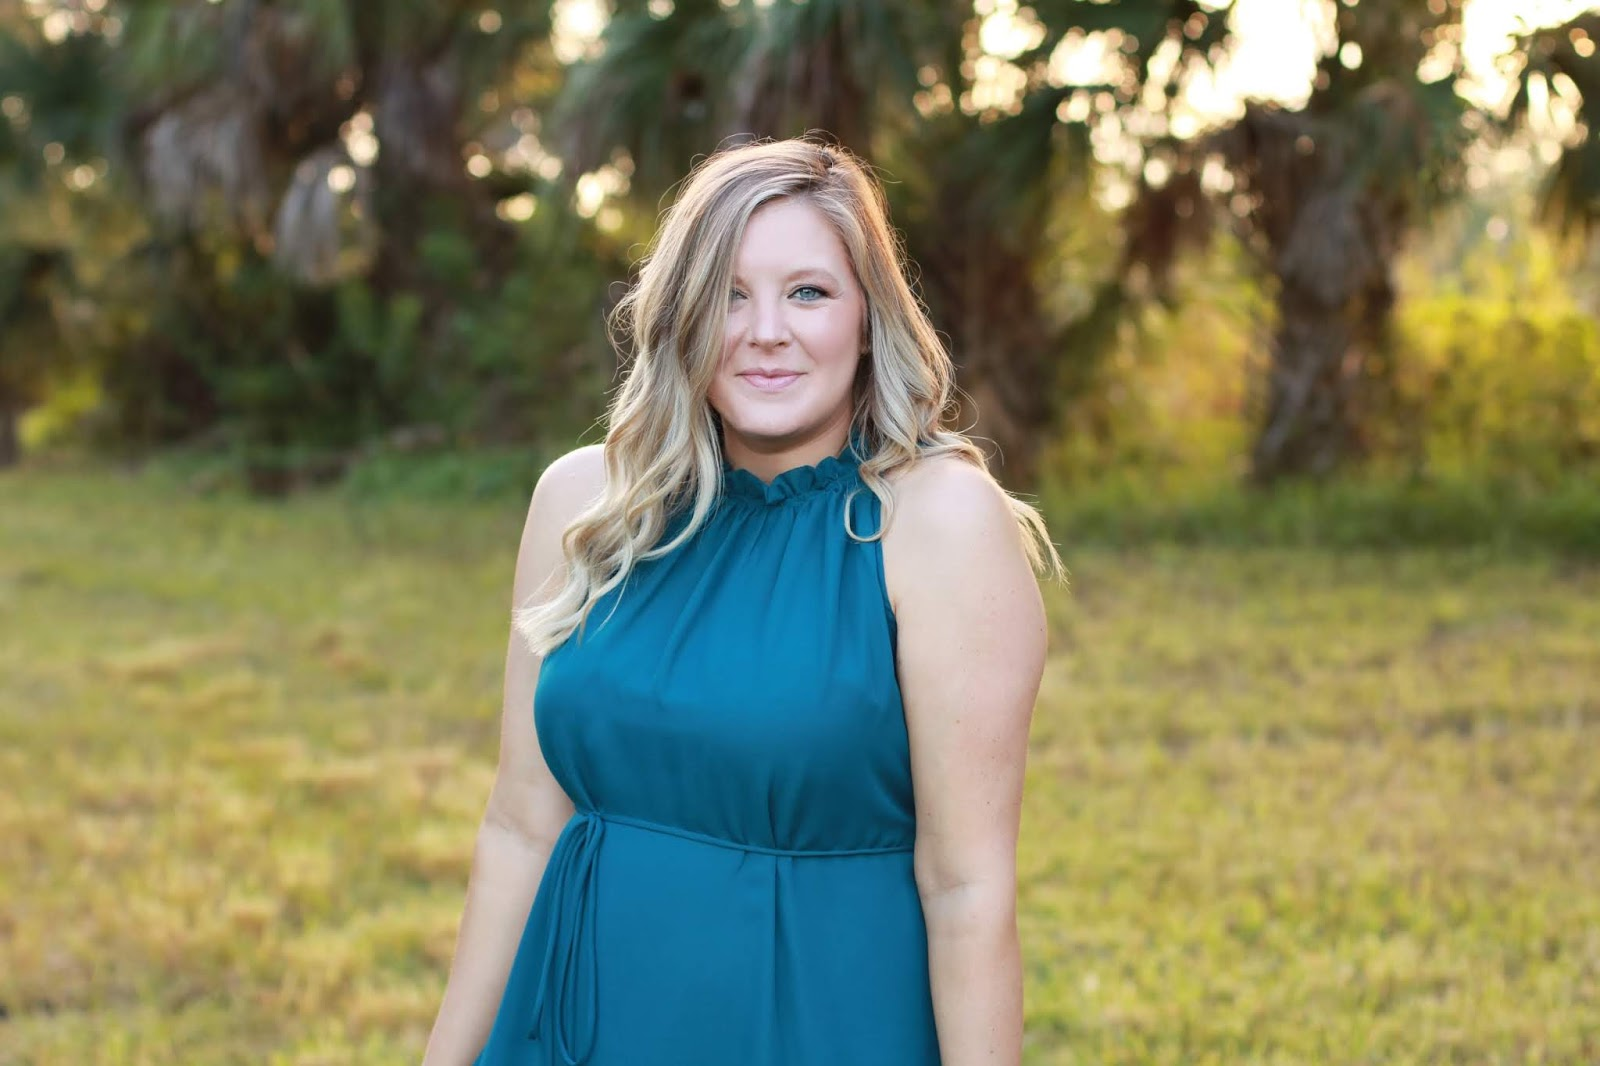 2607de3f2540c Today, I am teaming up with PinkBlush Maternity for a sponsored post to  share some maternity style. I have honestly tried so hard to get the  majority of my ...